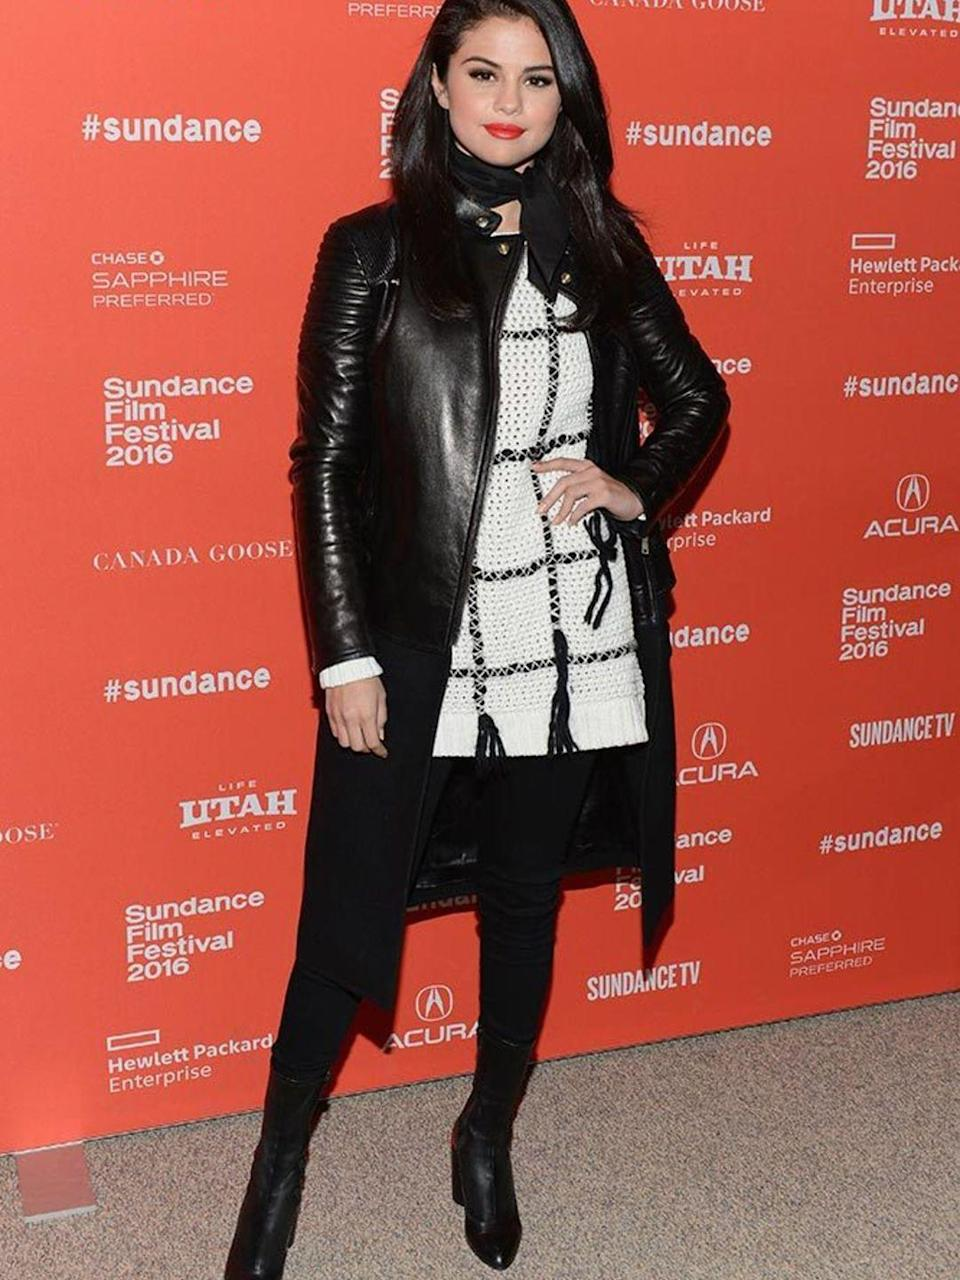 <p>Selena Gomez attends a screening of The Fundaments Of Caring during Sundance Film Festival in Utah, January 2016.</p>